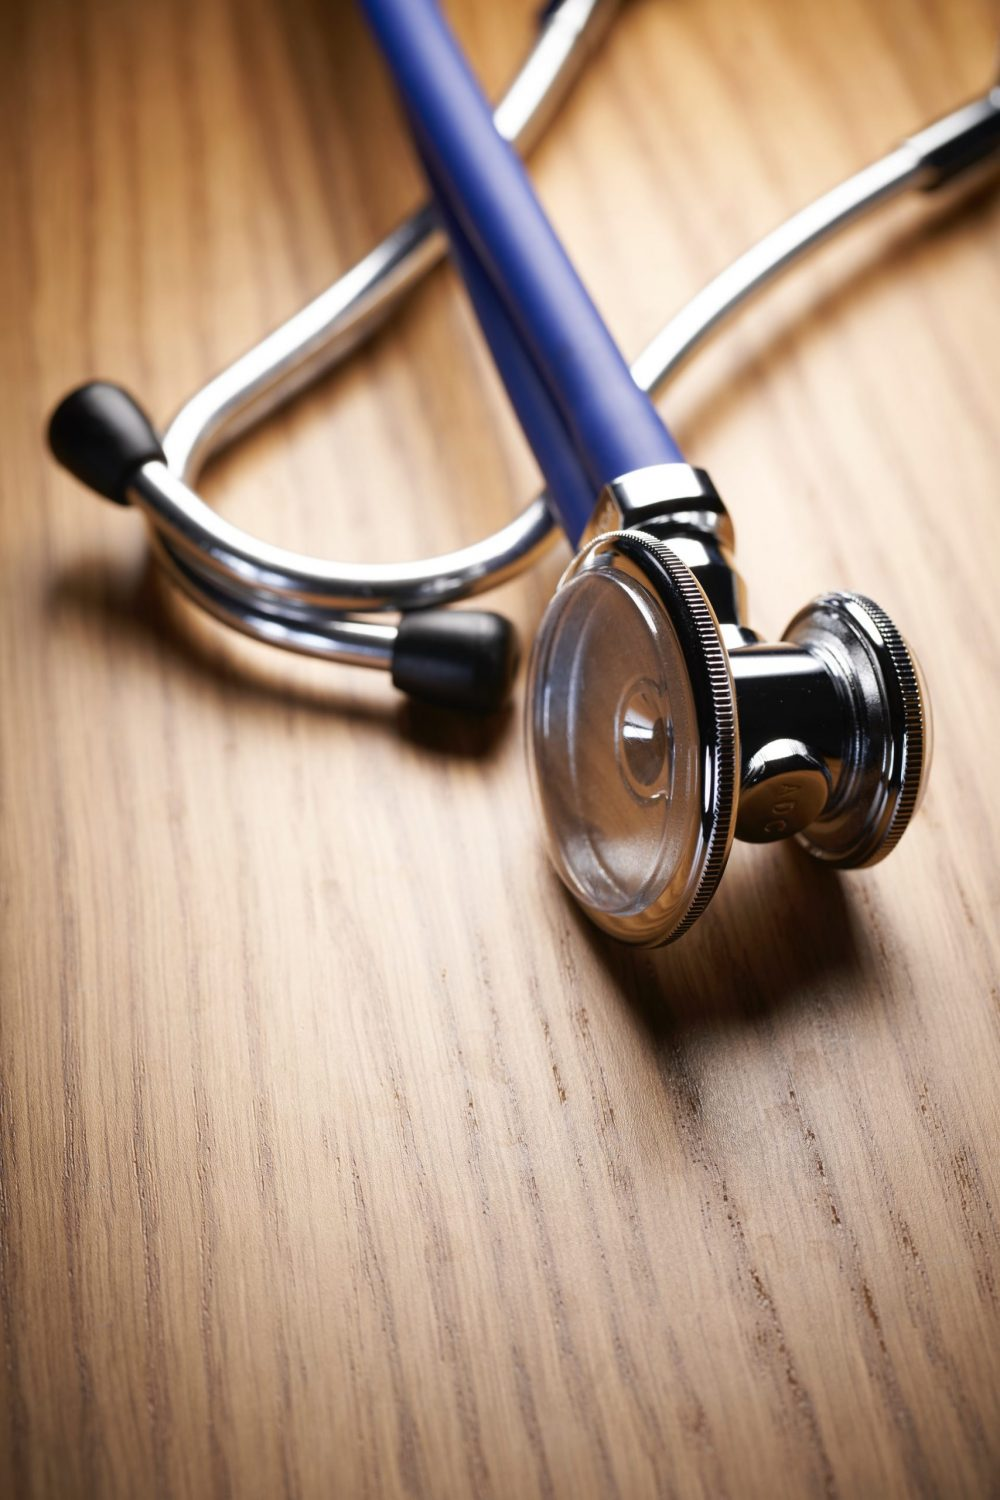 A stethoscope on a table - Research News Scotland